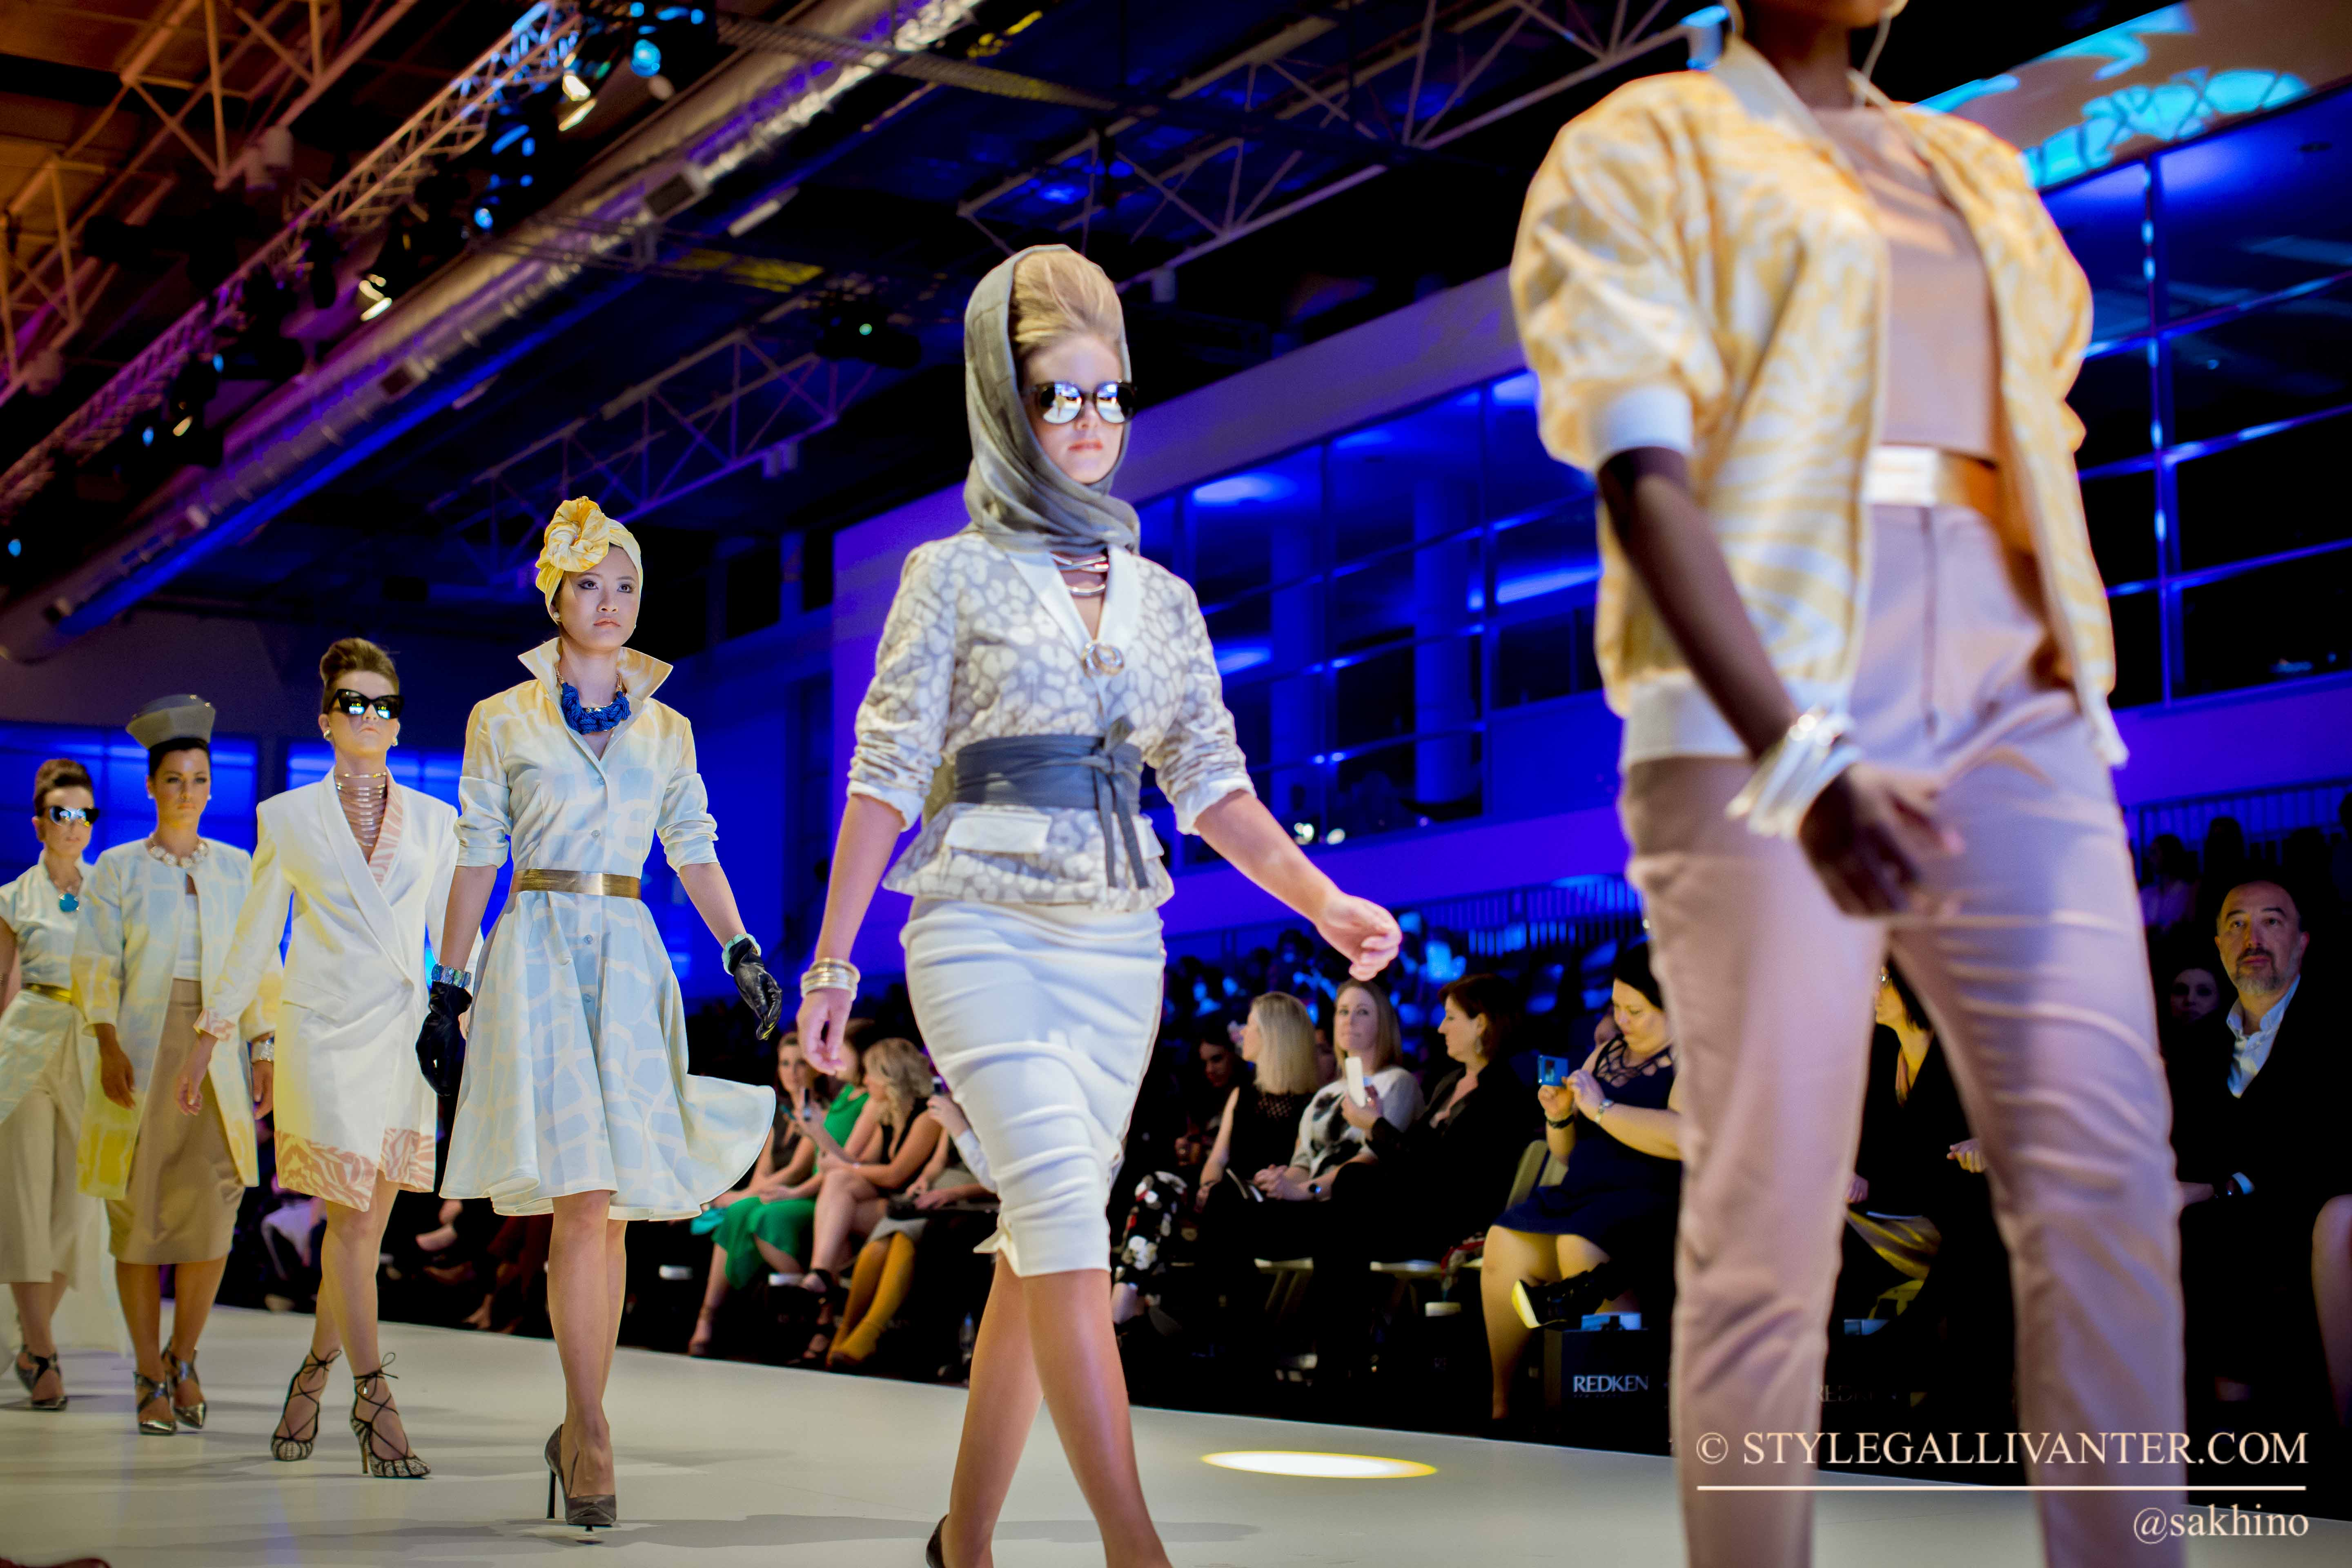 mirandaSAKHINO-copyright-2015_not-to-be-used-without-permission_mirandasakhino-runway-2015_mirandasakhino-fashfest-miranda-sakhino-resort-collection_miranda-sakhino-fashfest-31